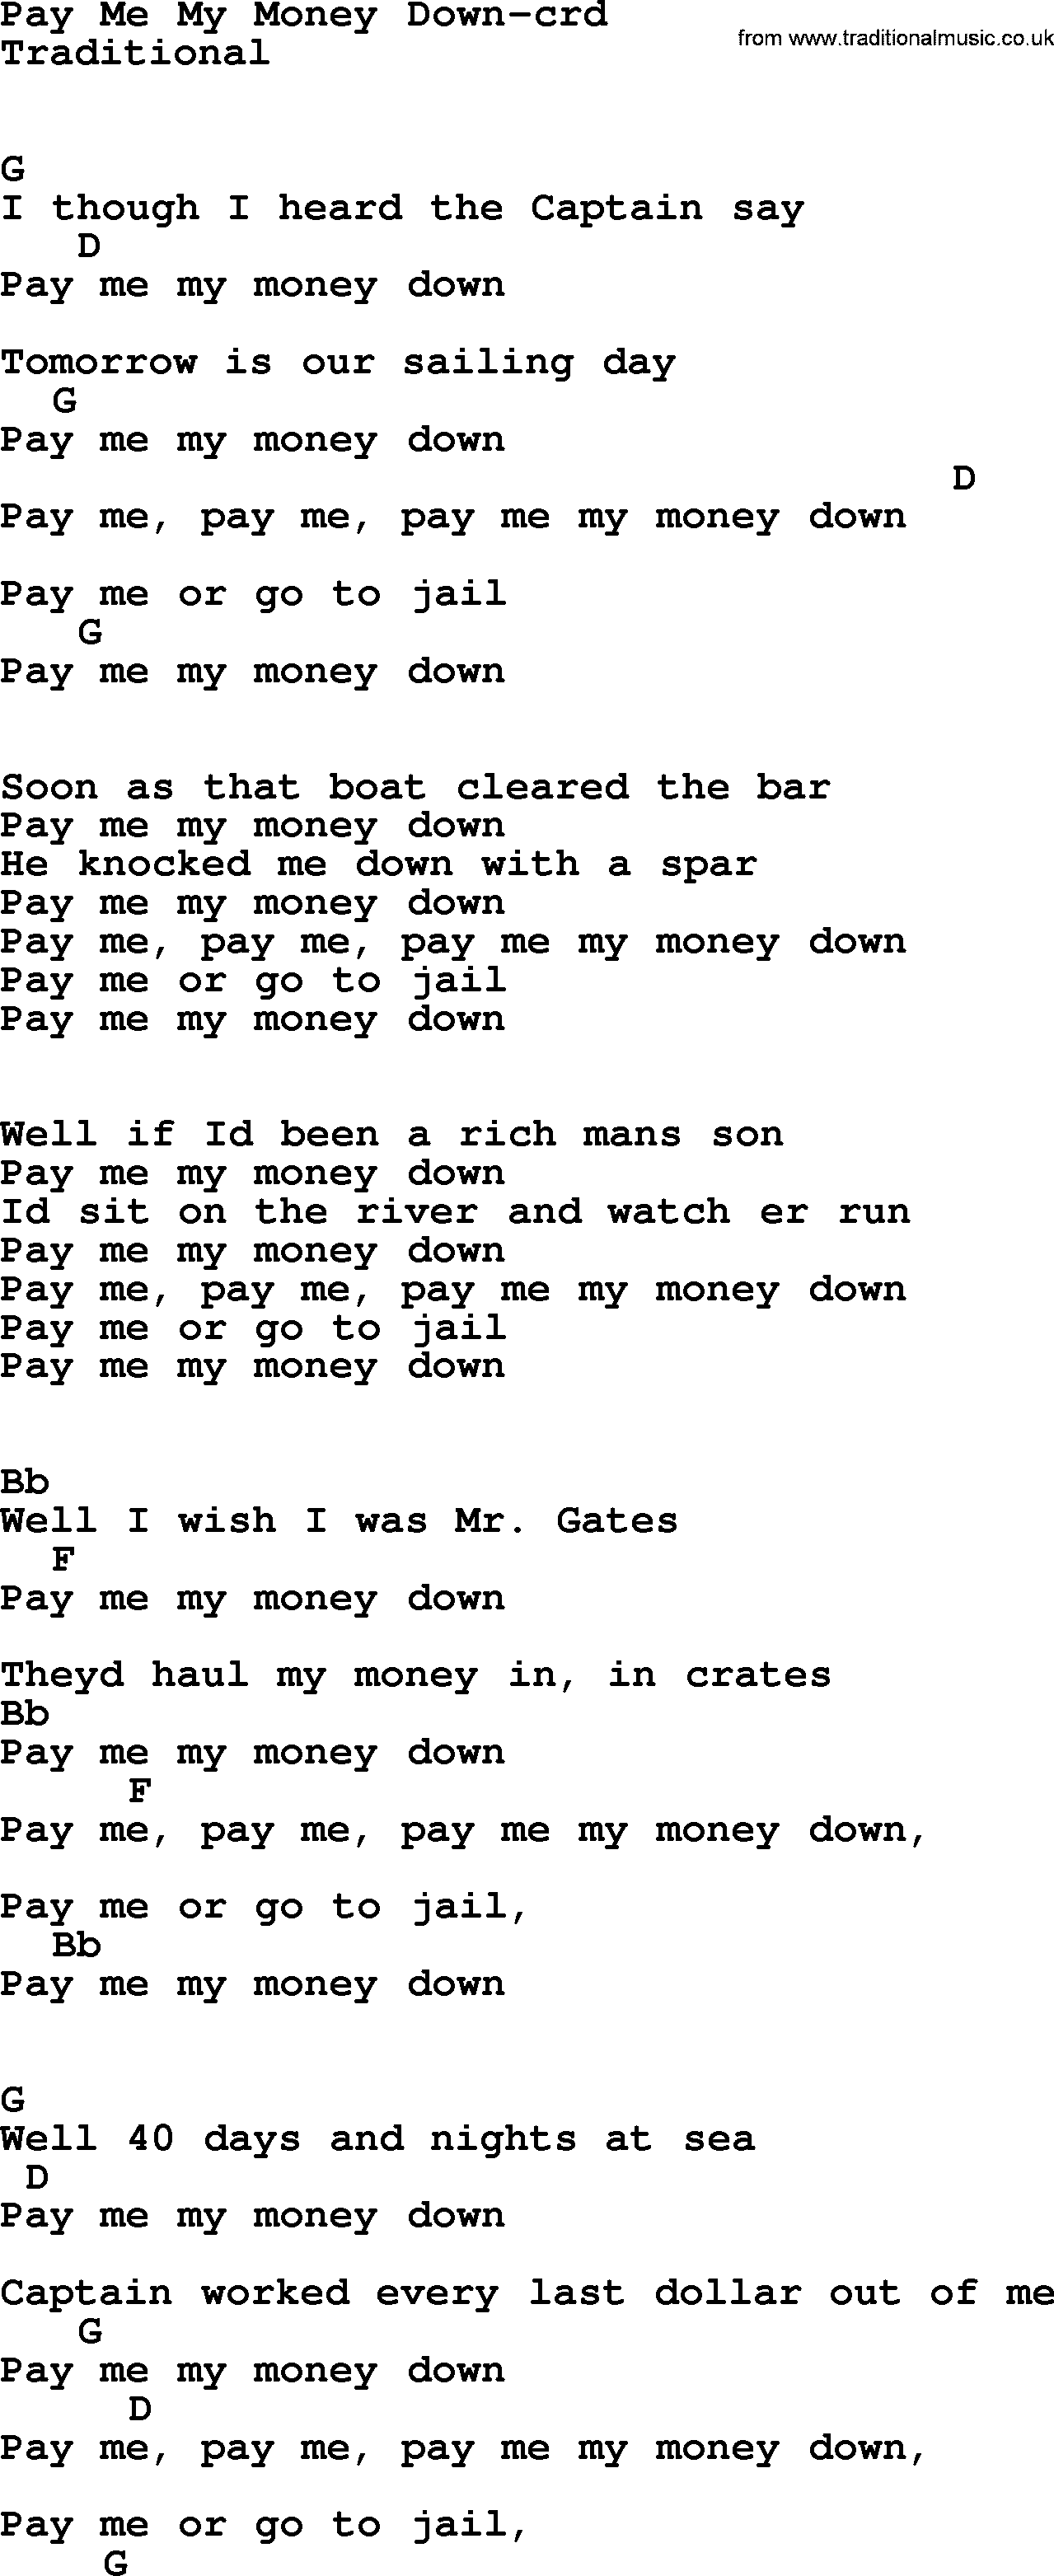 Bruce Springsteen Song Pay Me My Money Down Lyrics And Chords